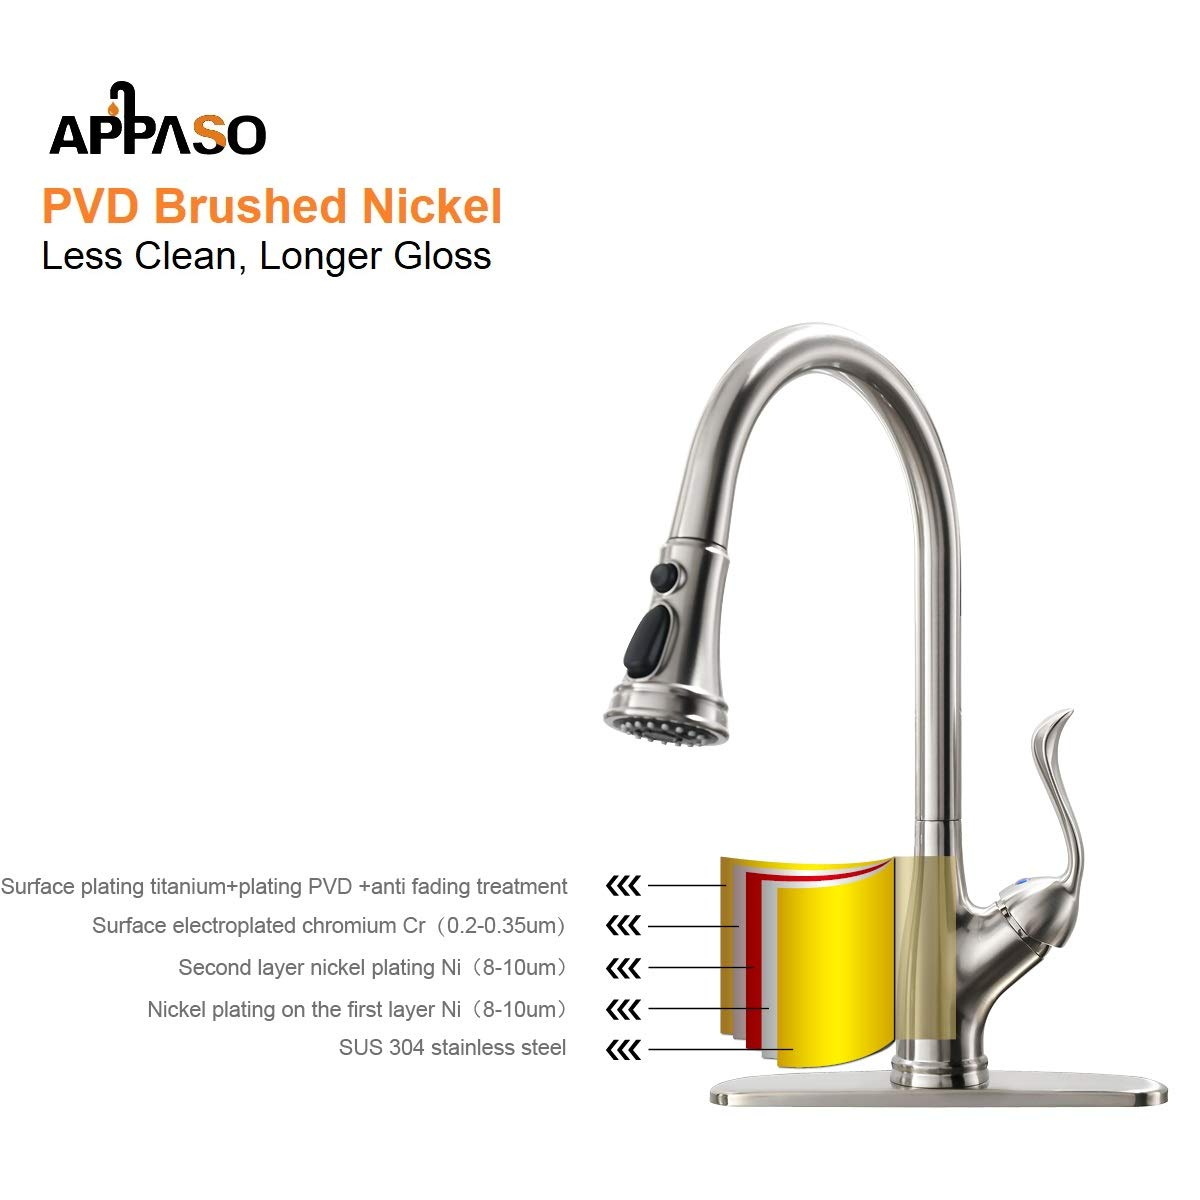 APPASO Single Handle Pull Down Kitchen Faucet with Sprayer, Stainless Steel Brushed Nickel High Arc Single Hole Pull Out Spray Head Kitchen Sink Faucet with Escutcheon by APPASO (Image #8)